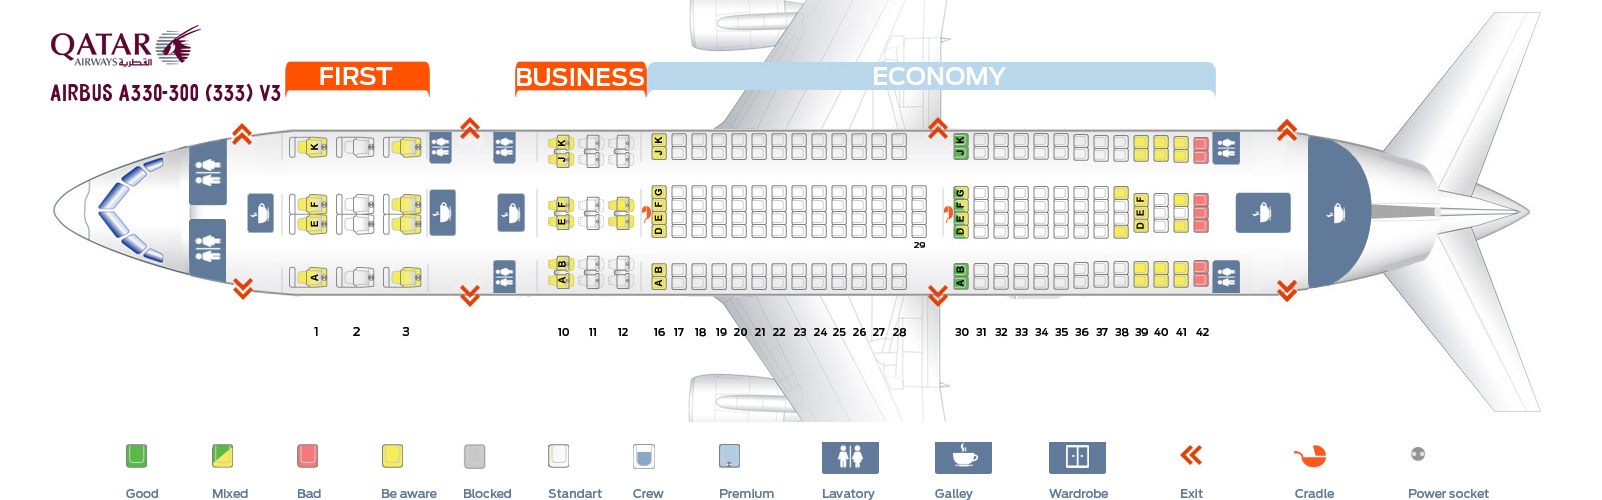 Seat Map Airbus A330-300 V3 Qatar Airways